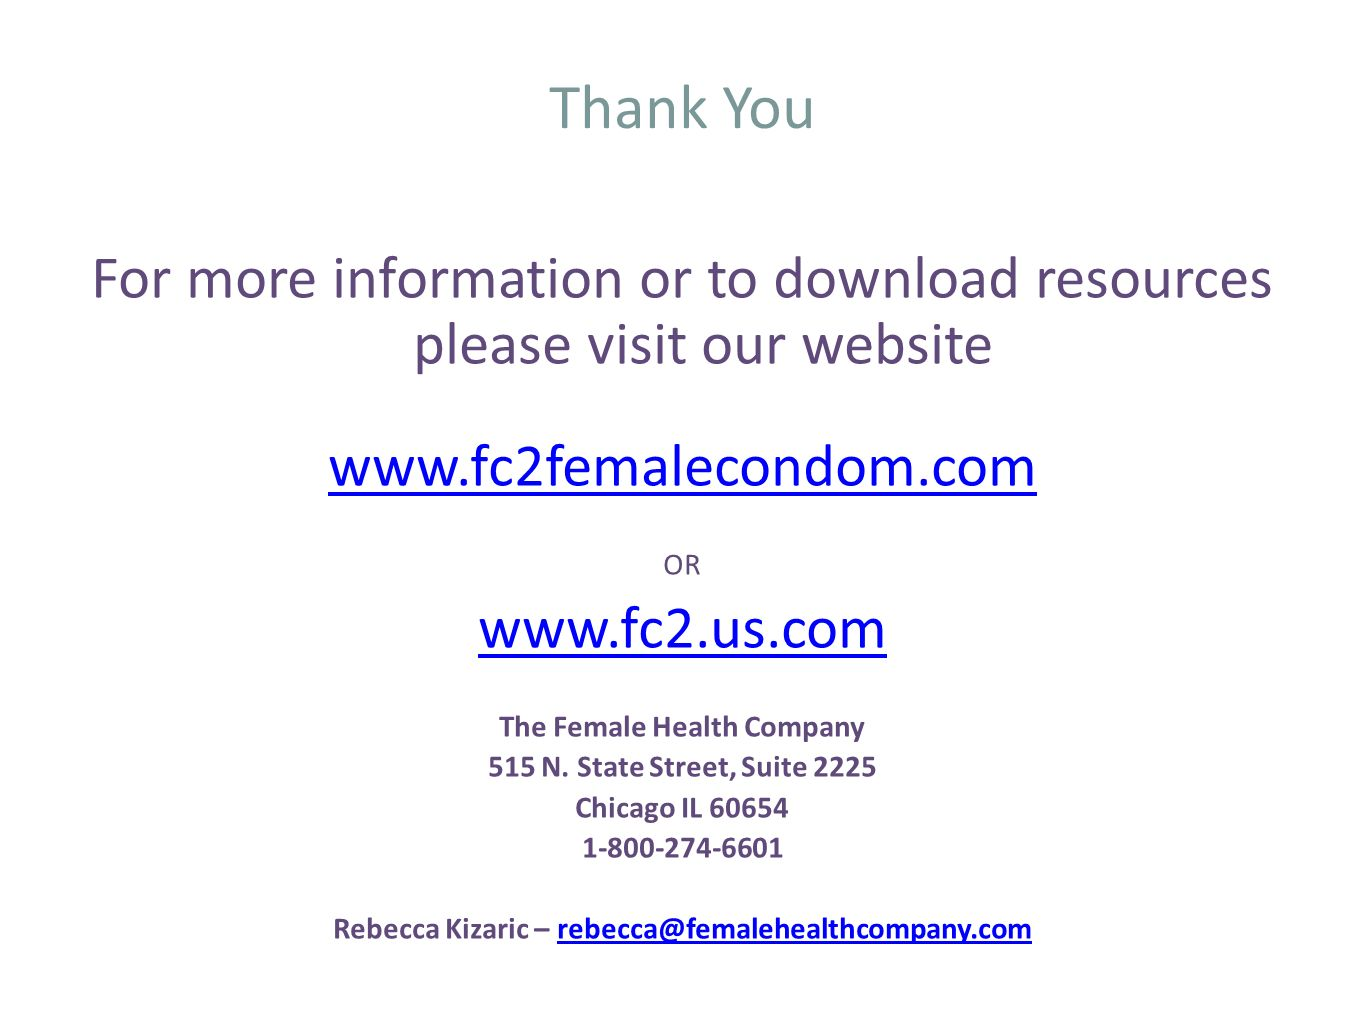 Thank You For more information or to download resources please visit our website.